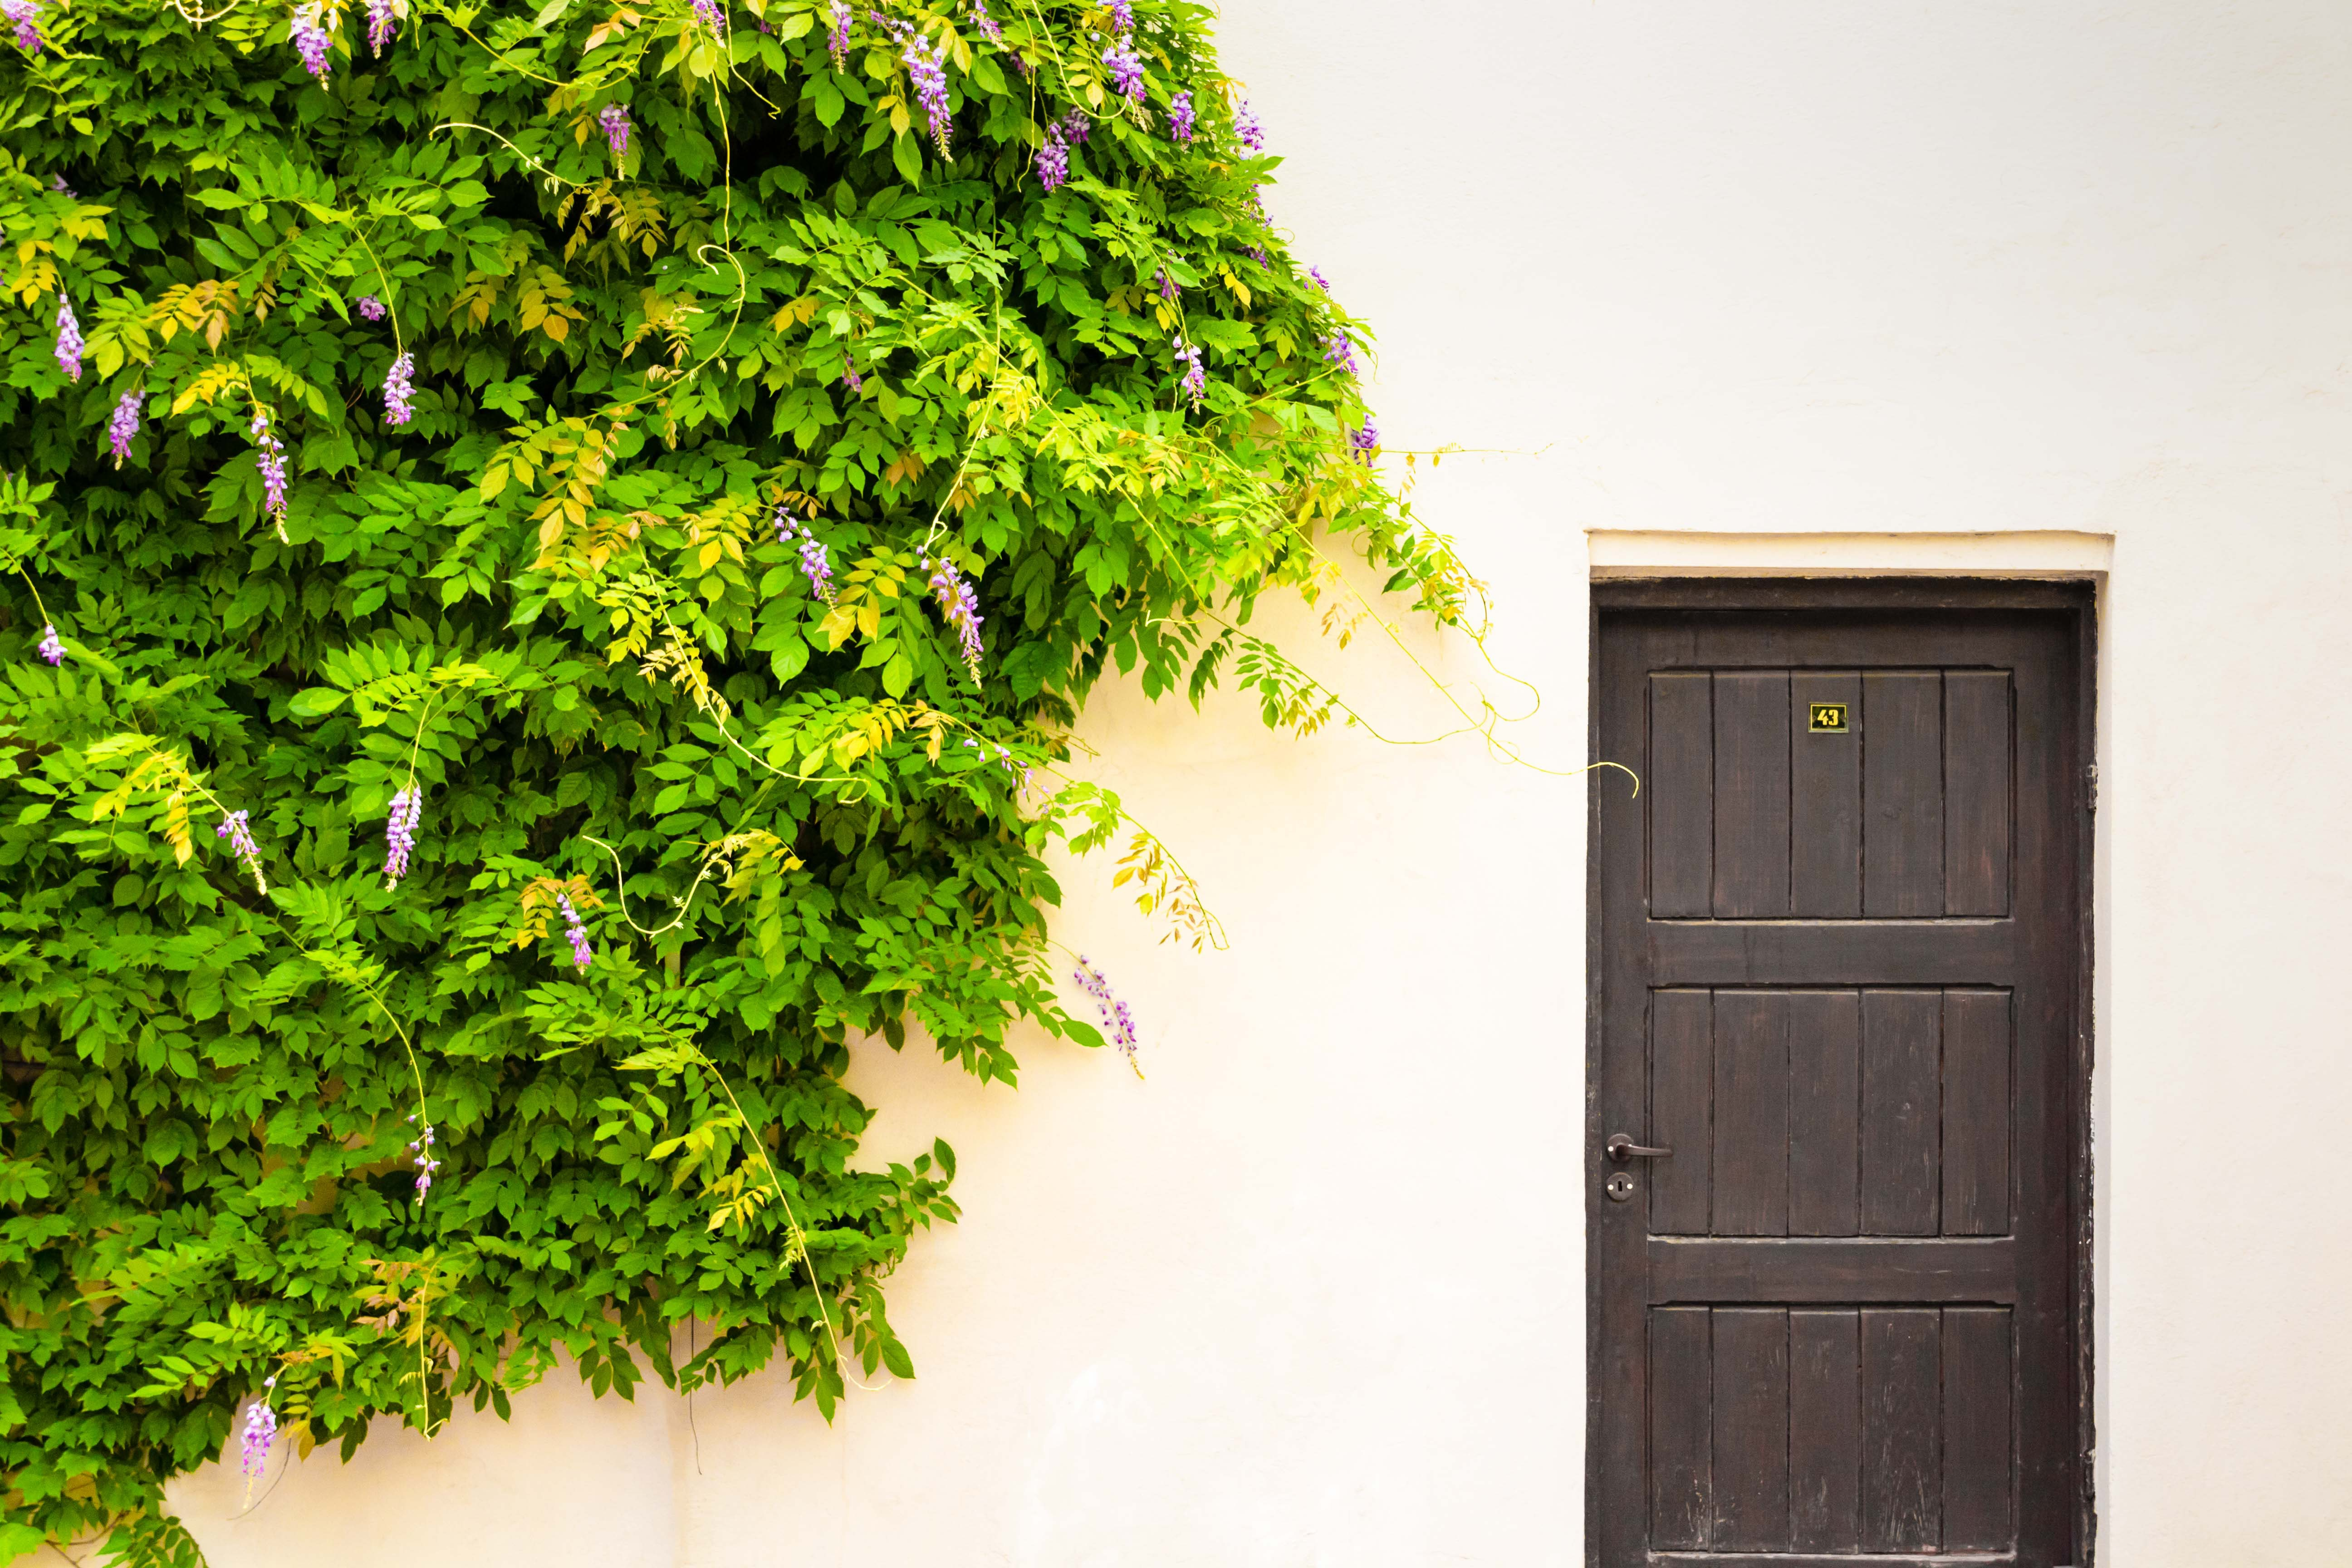 Wisteria growing along a wall next to a door